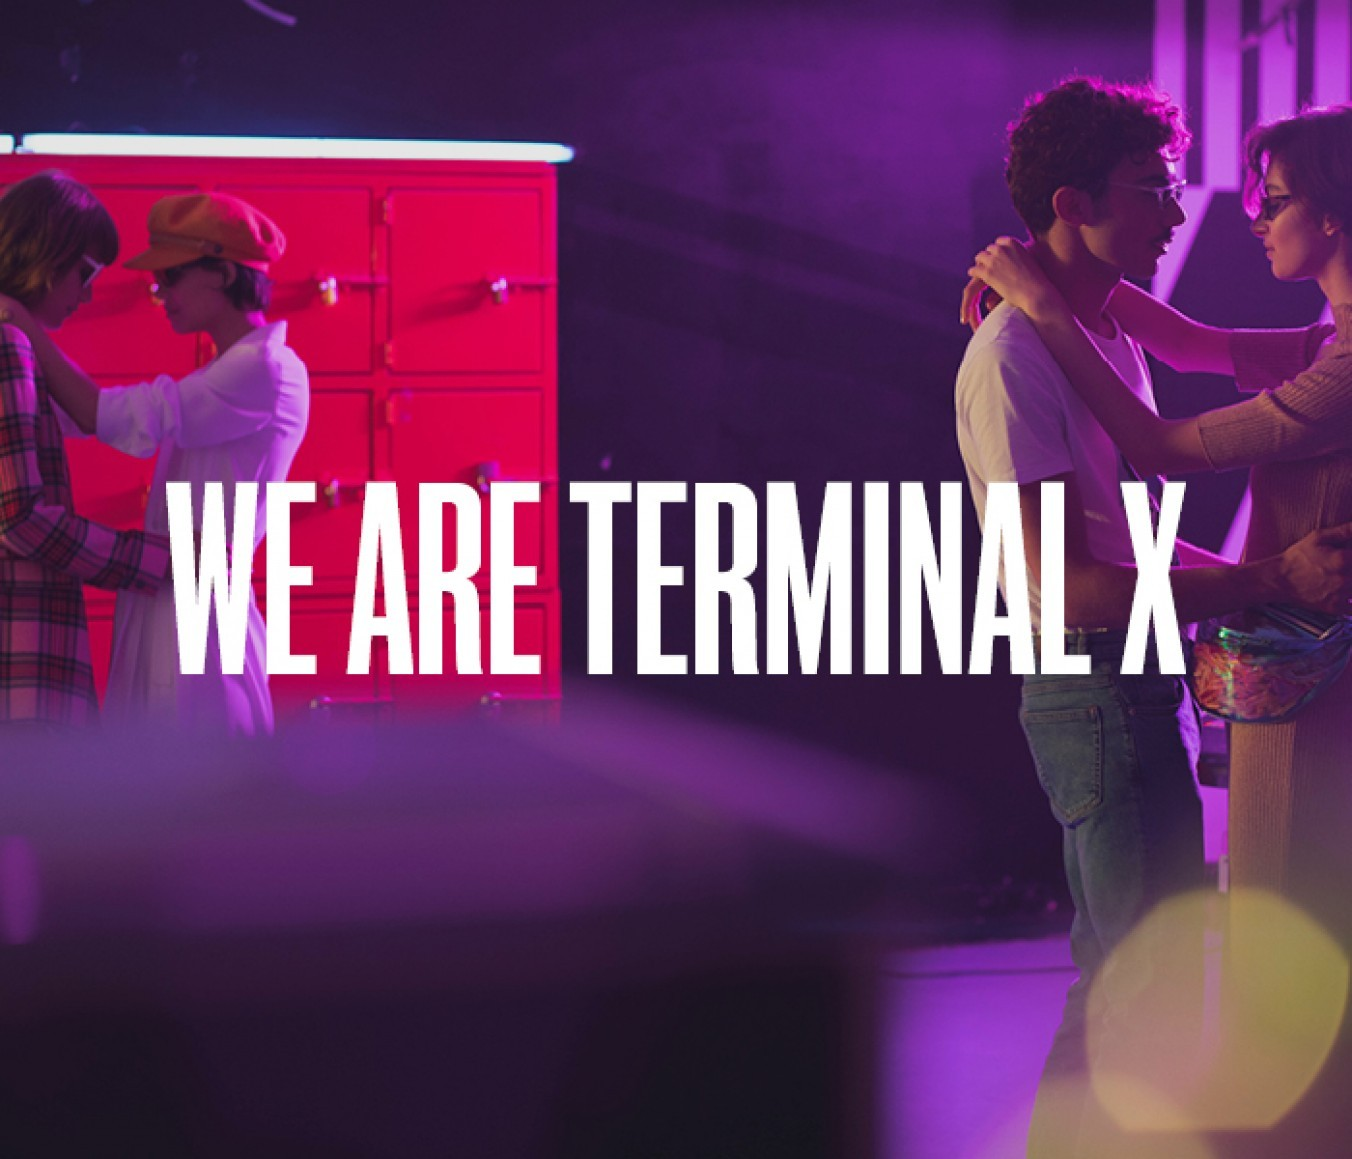 ABOUT TERMINAL X